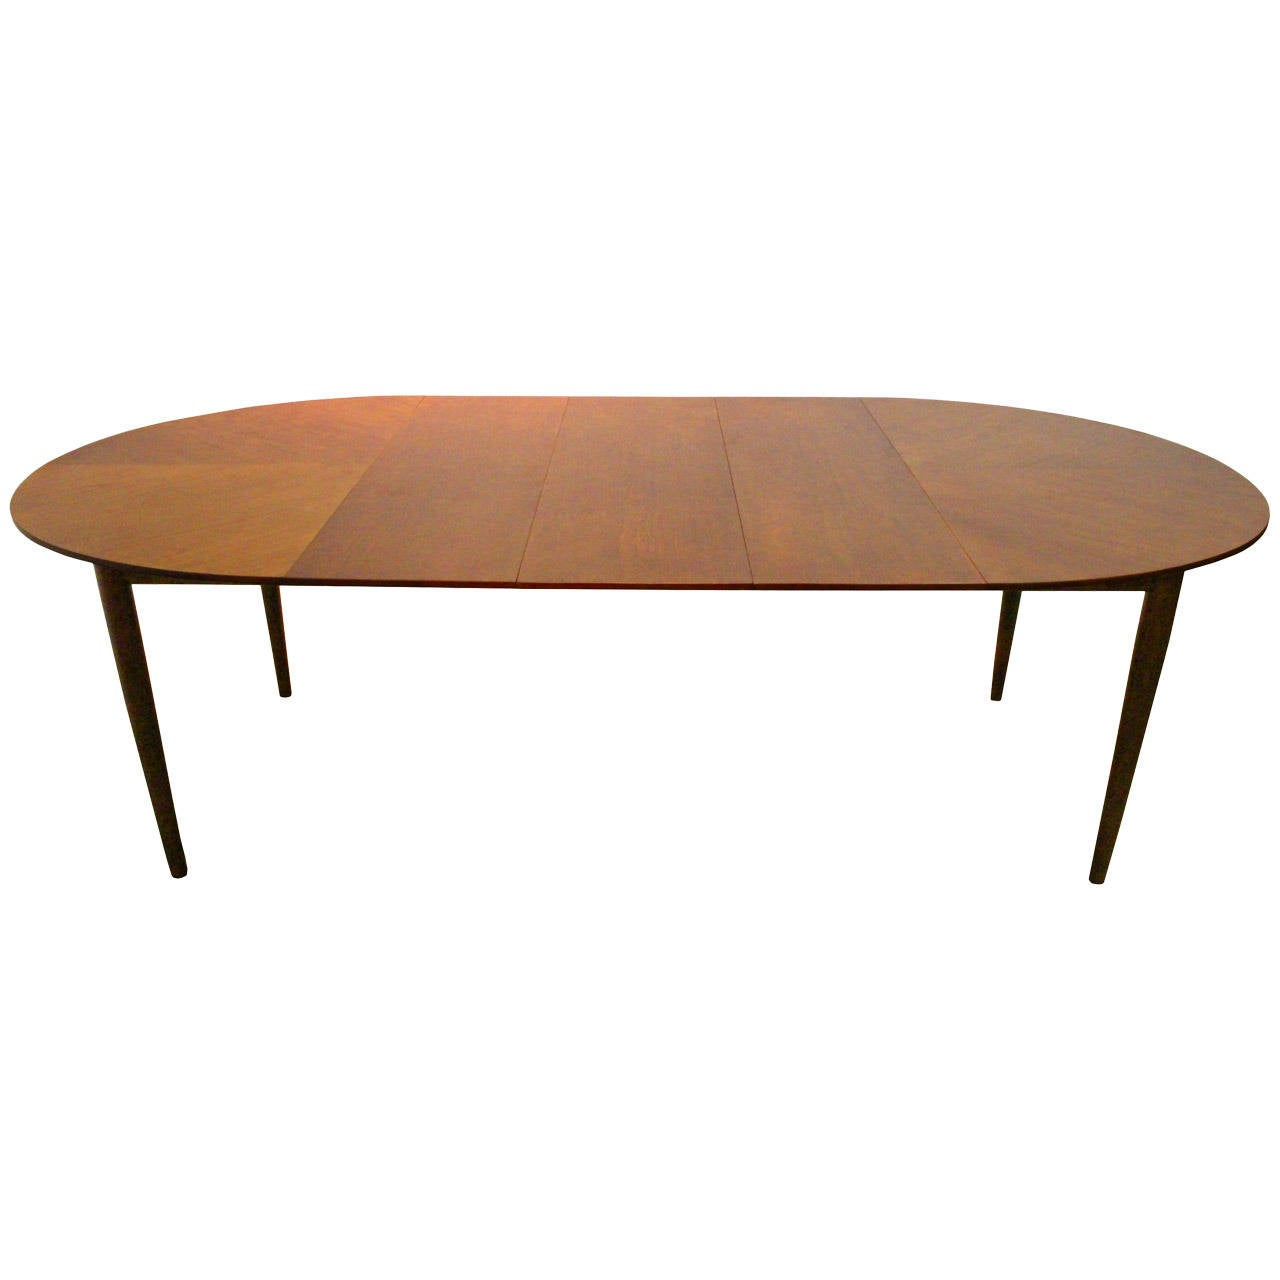 this dining table by finn juhl for baker is no longer available